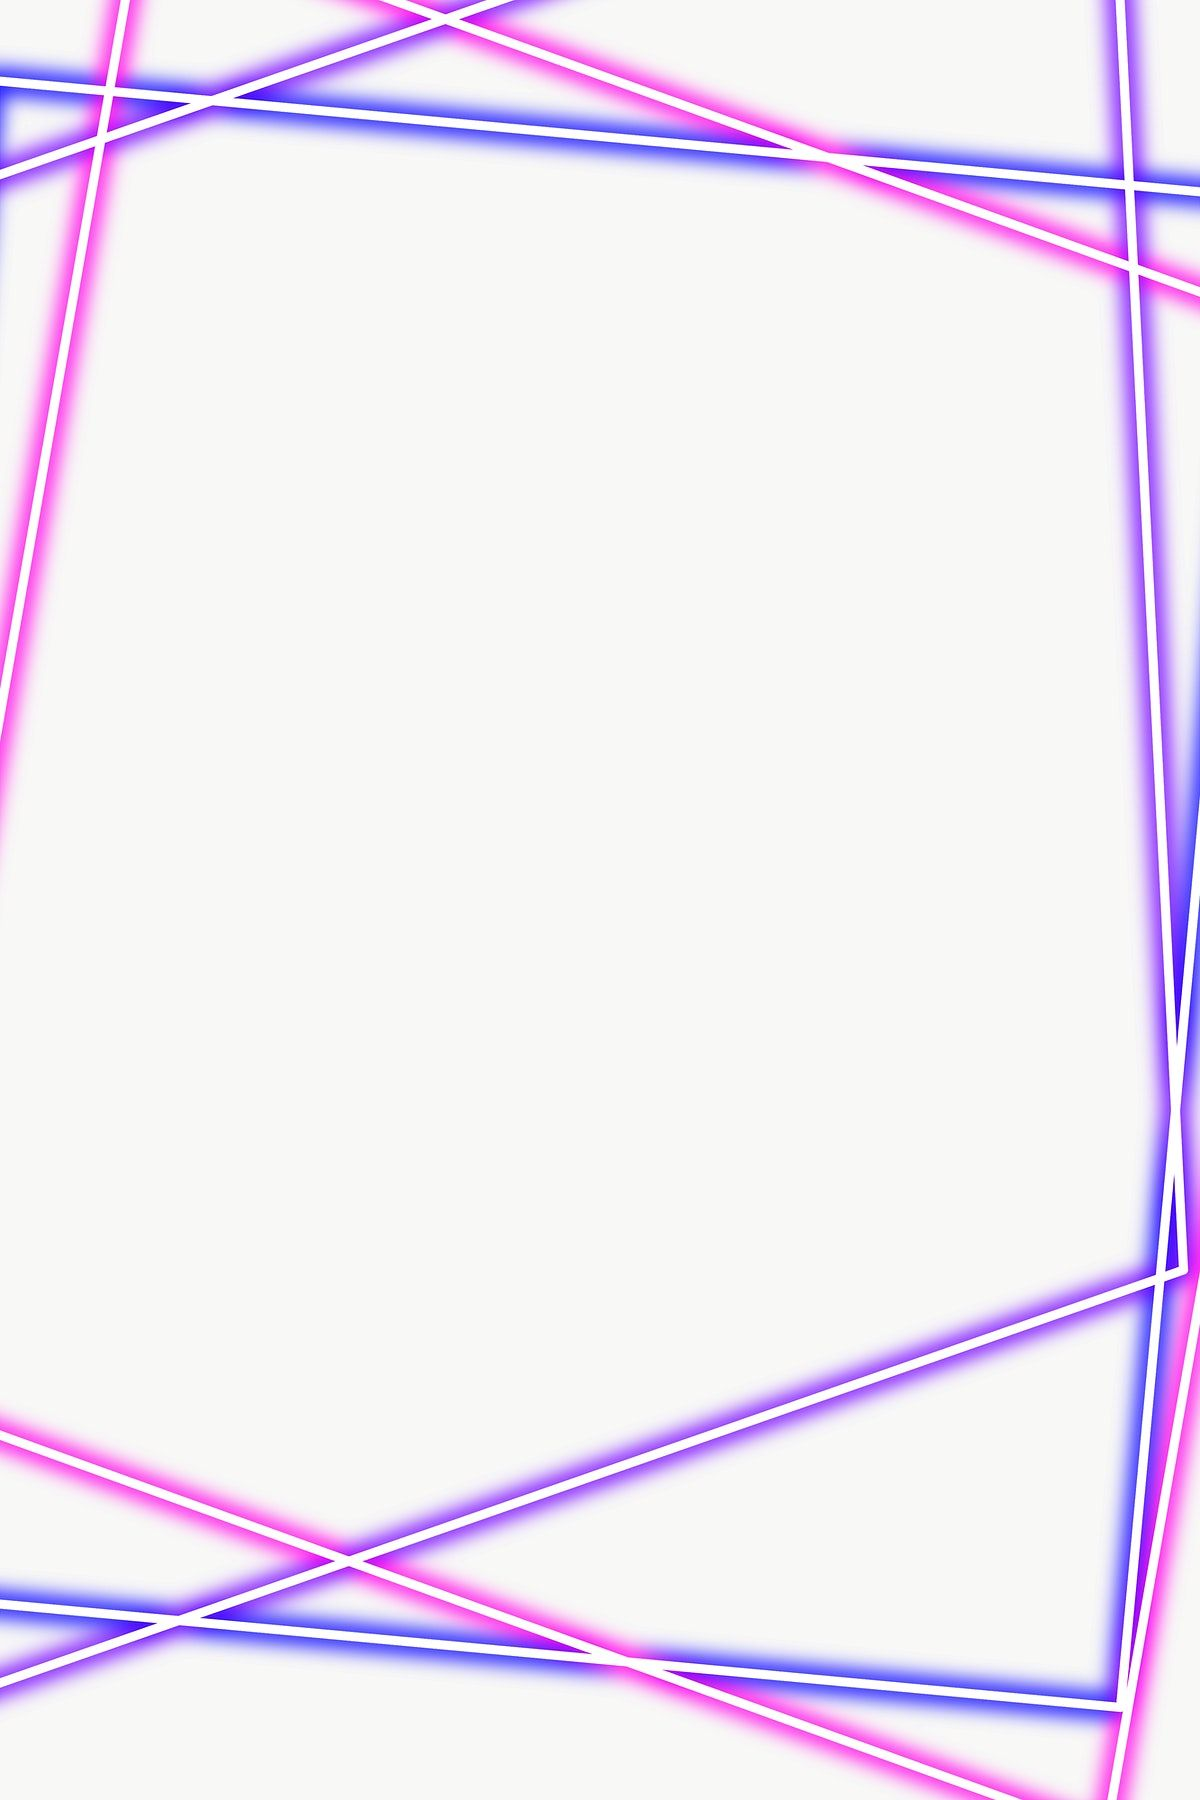 Purple And Pink Rectangle Neon Frame Design Element Free Image By Rawpixel Com Mind Design Element Frame Design Free Illustrations